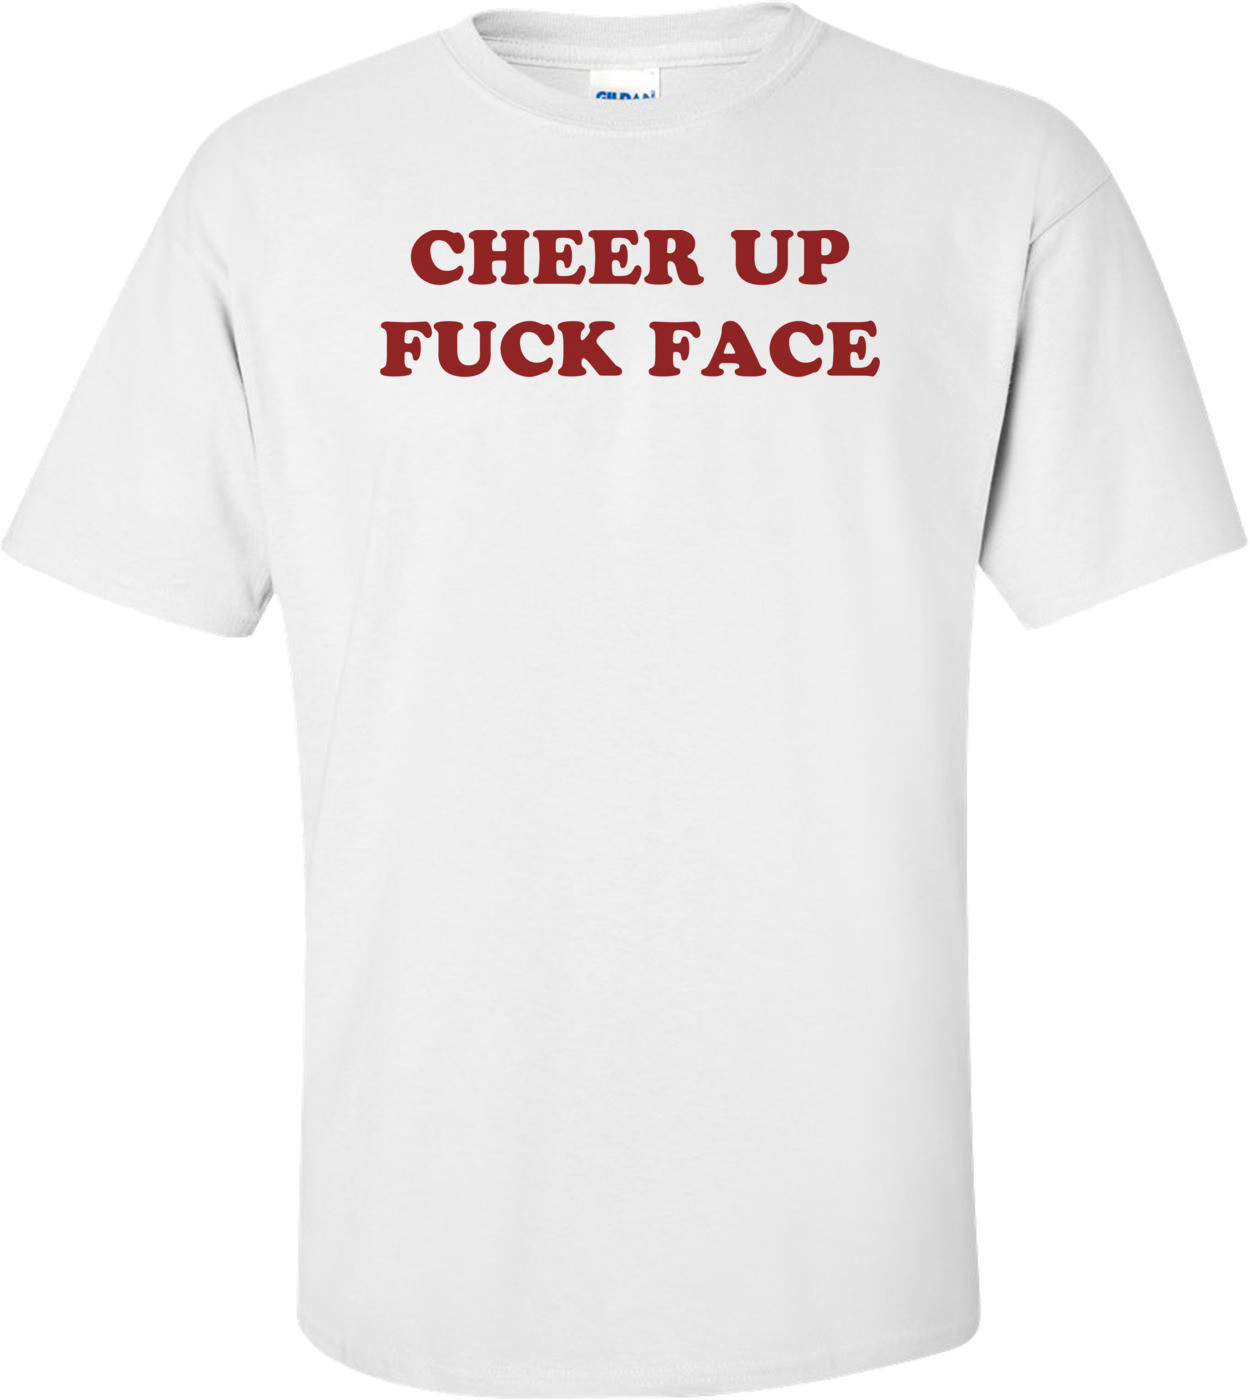 CHEER UP FUCK FACE Shirt